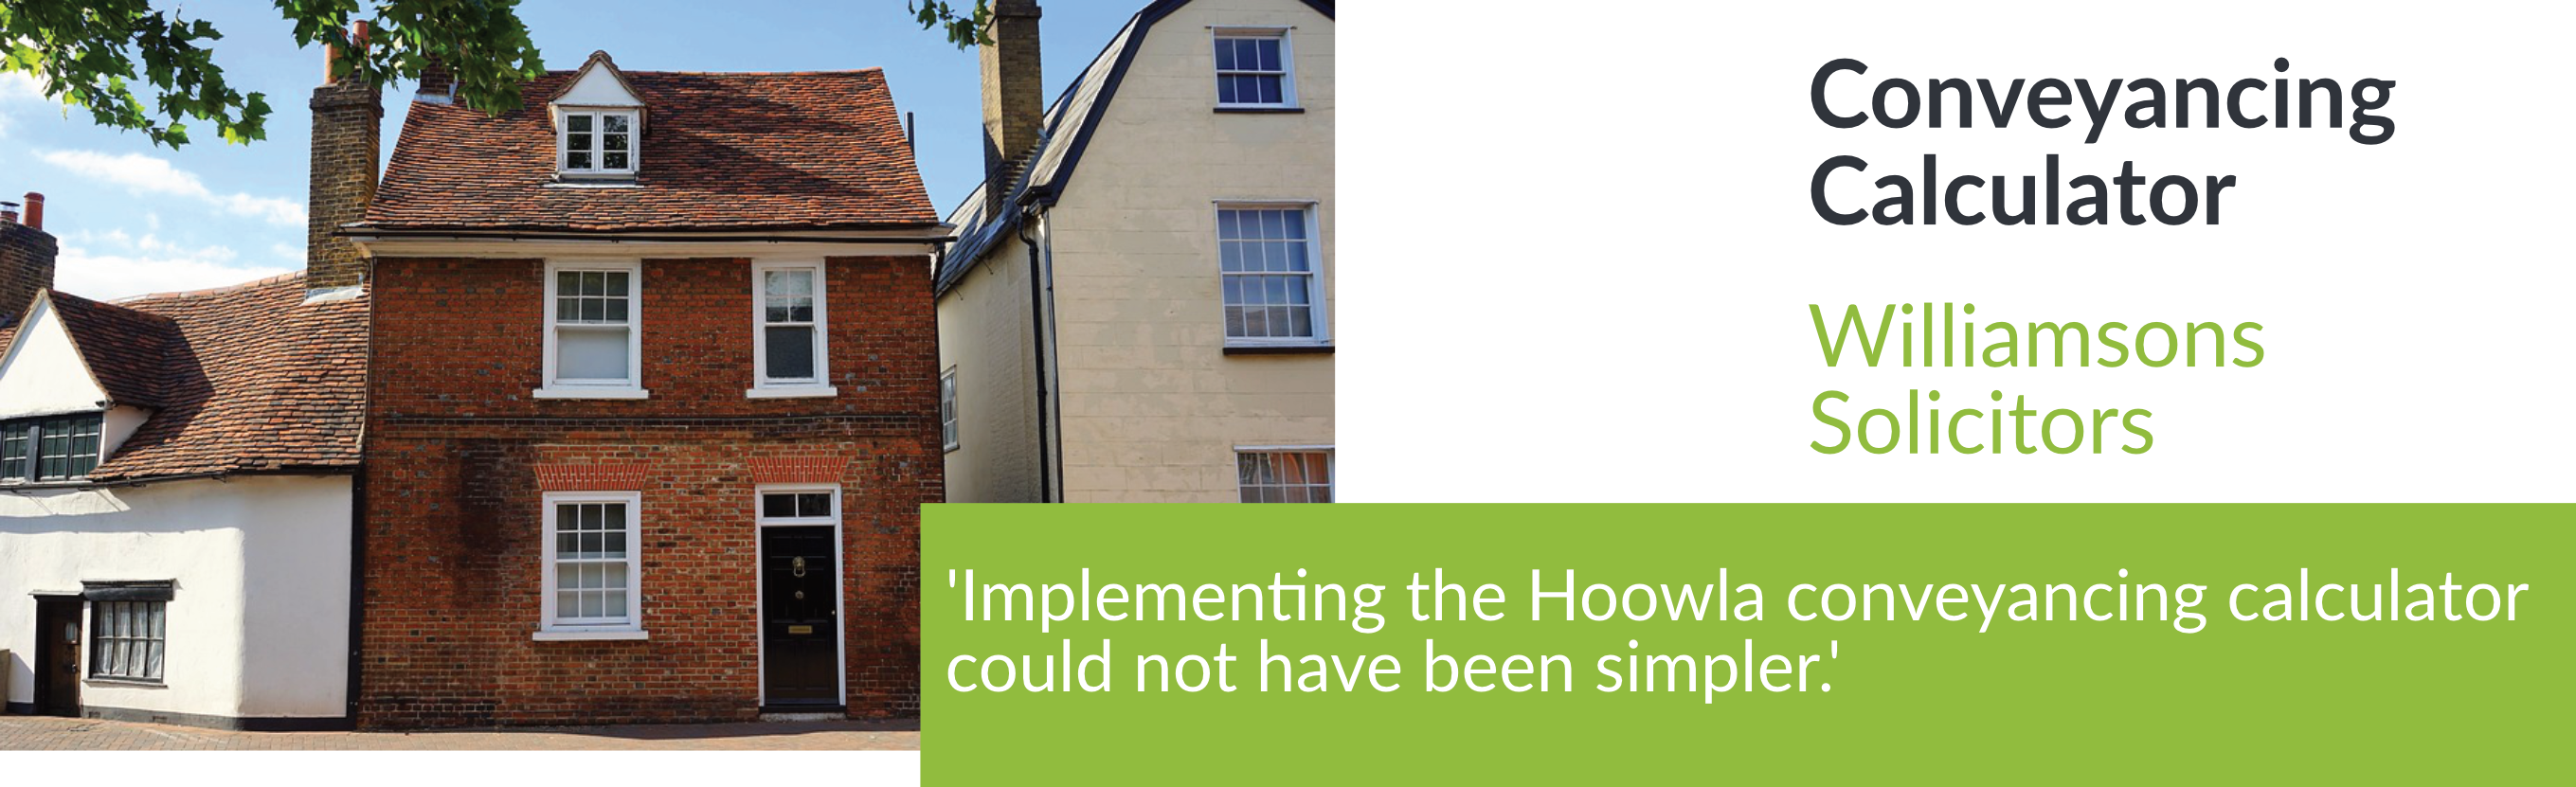 Hoowla Review Conveyancing Calculator Williamsons Solicitors